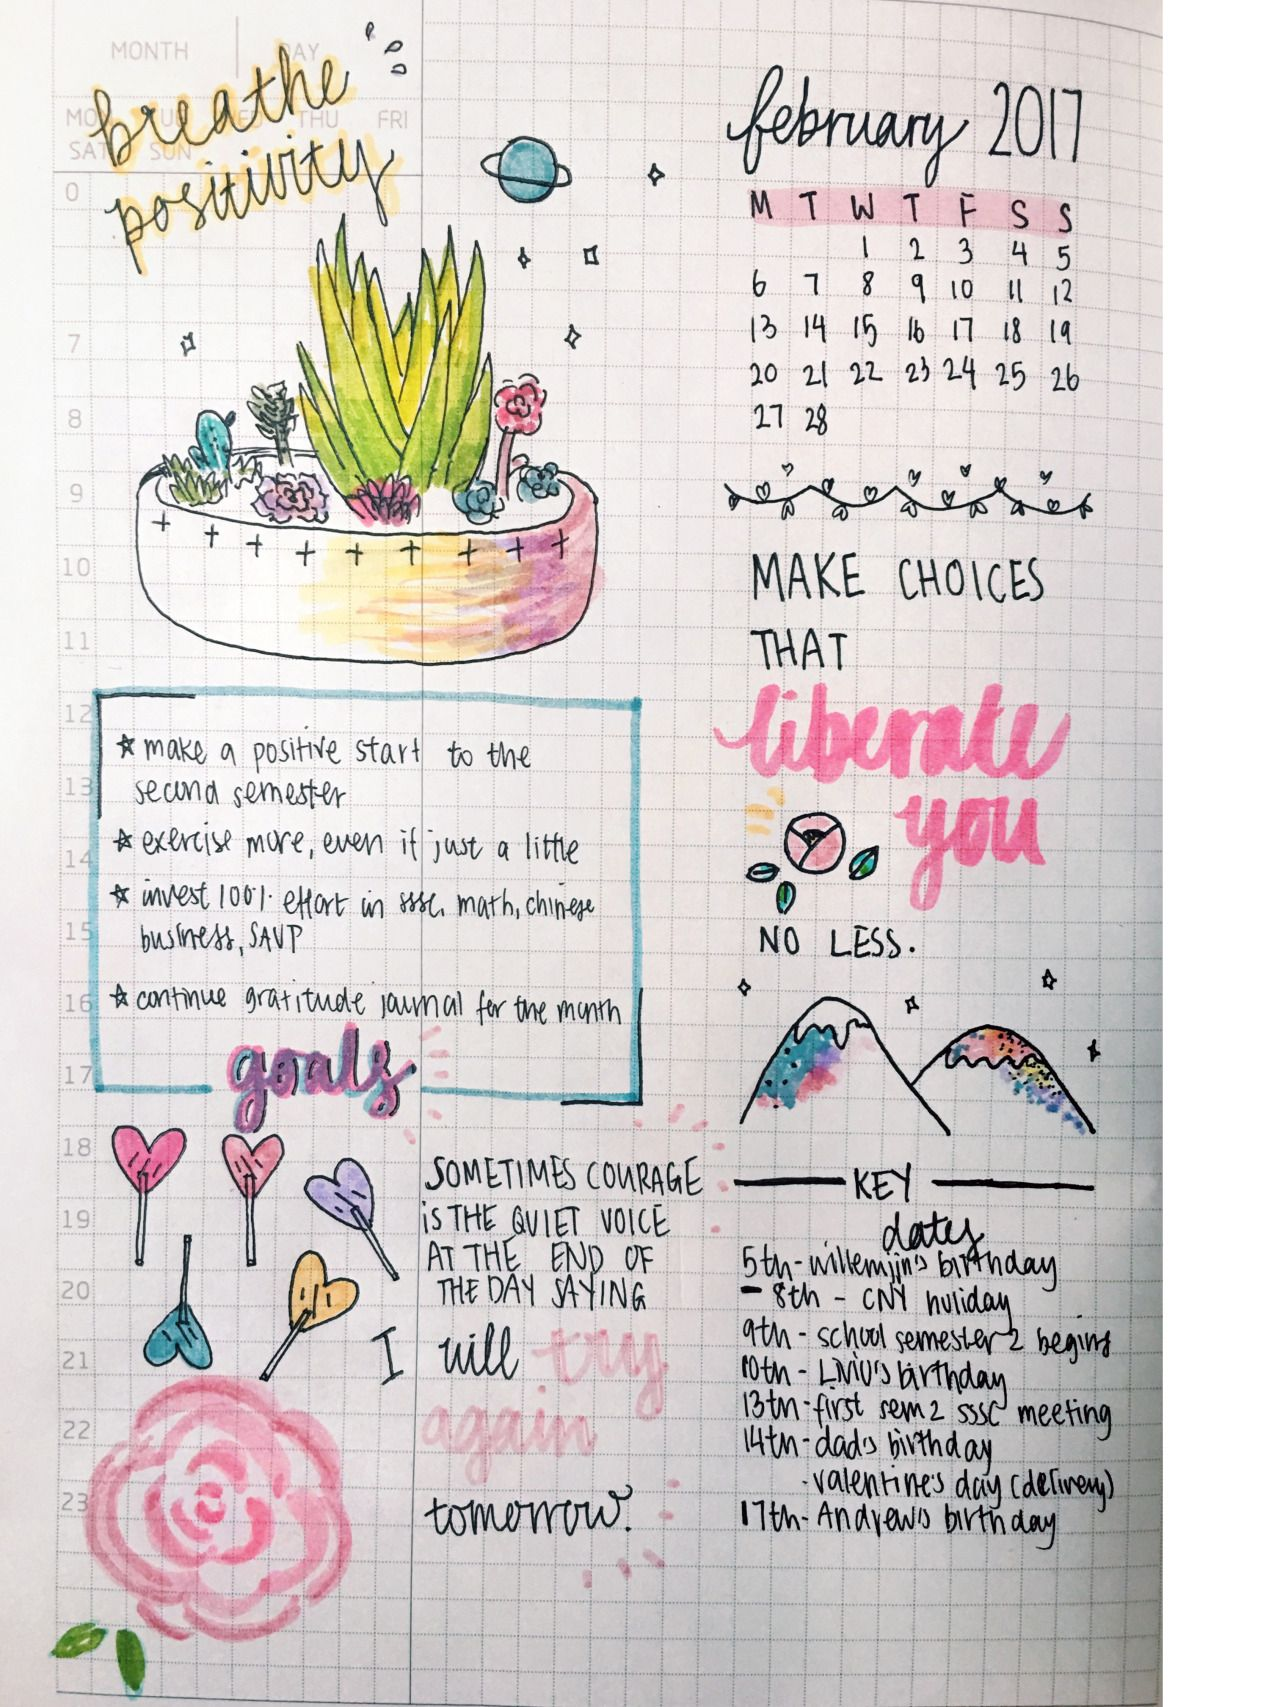 Pin On Filofax Planner Organizers And Journals